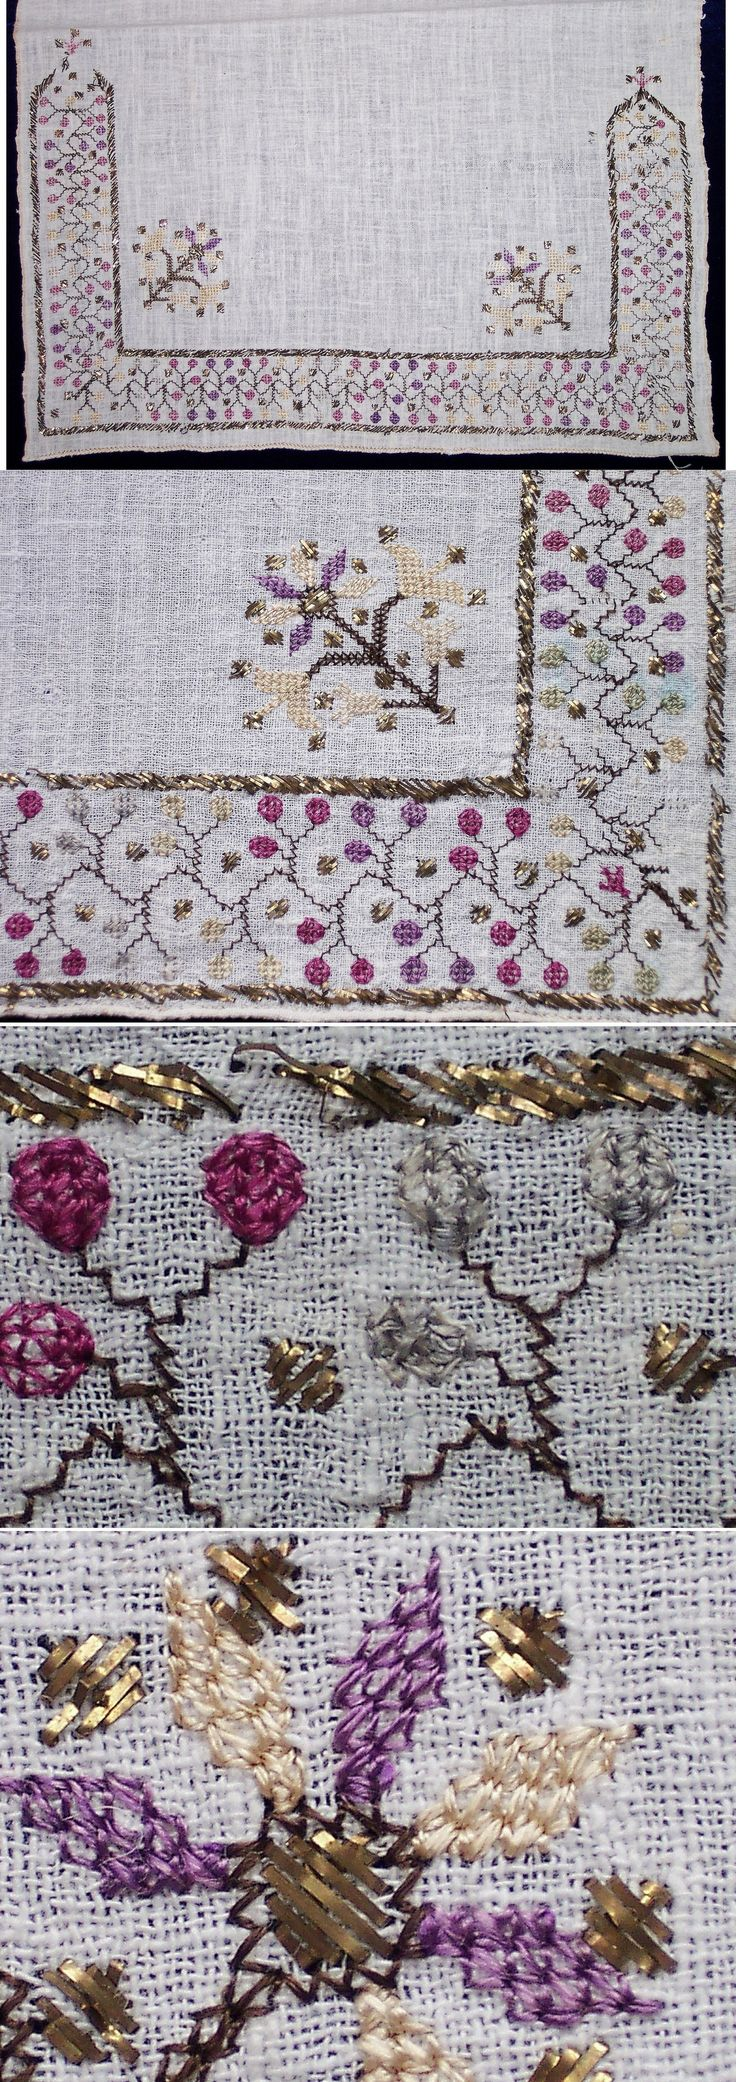 One embroidered end of a linen 'makrama' (embroidered napkin).  From the Marmara region, 2nd half of 19th century.  The 'two-sided' embroidery (identical on both sides of the fabric) is executed in both multi-coloured silk and 'tel kırma' (motives obtained by sticking narrow metallic strips through the fabric and folding them).  (Inv.nr. brdw042 - Kavak Costume Collection - Antwerpen/Belgium).